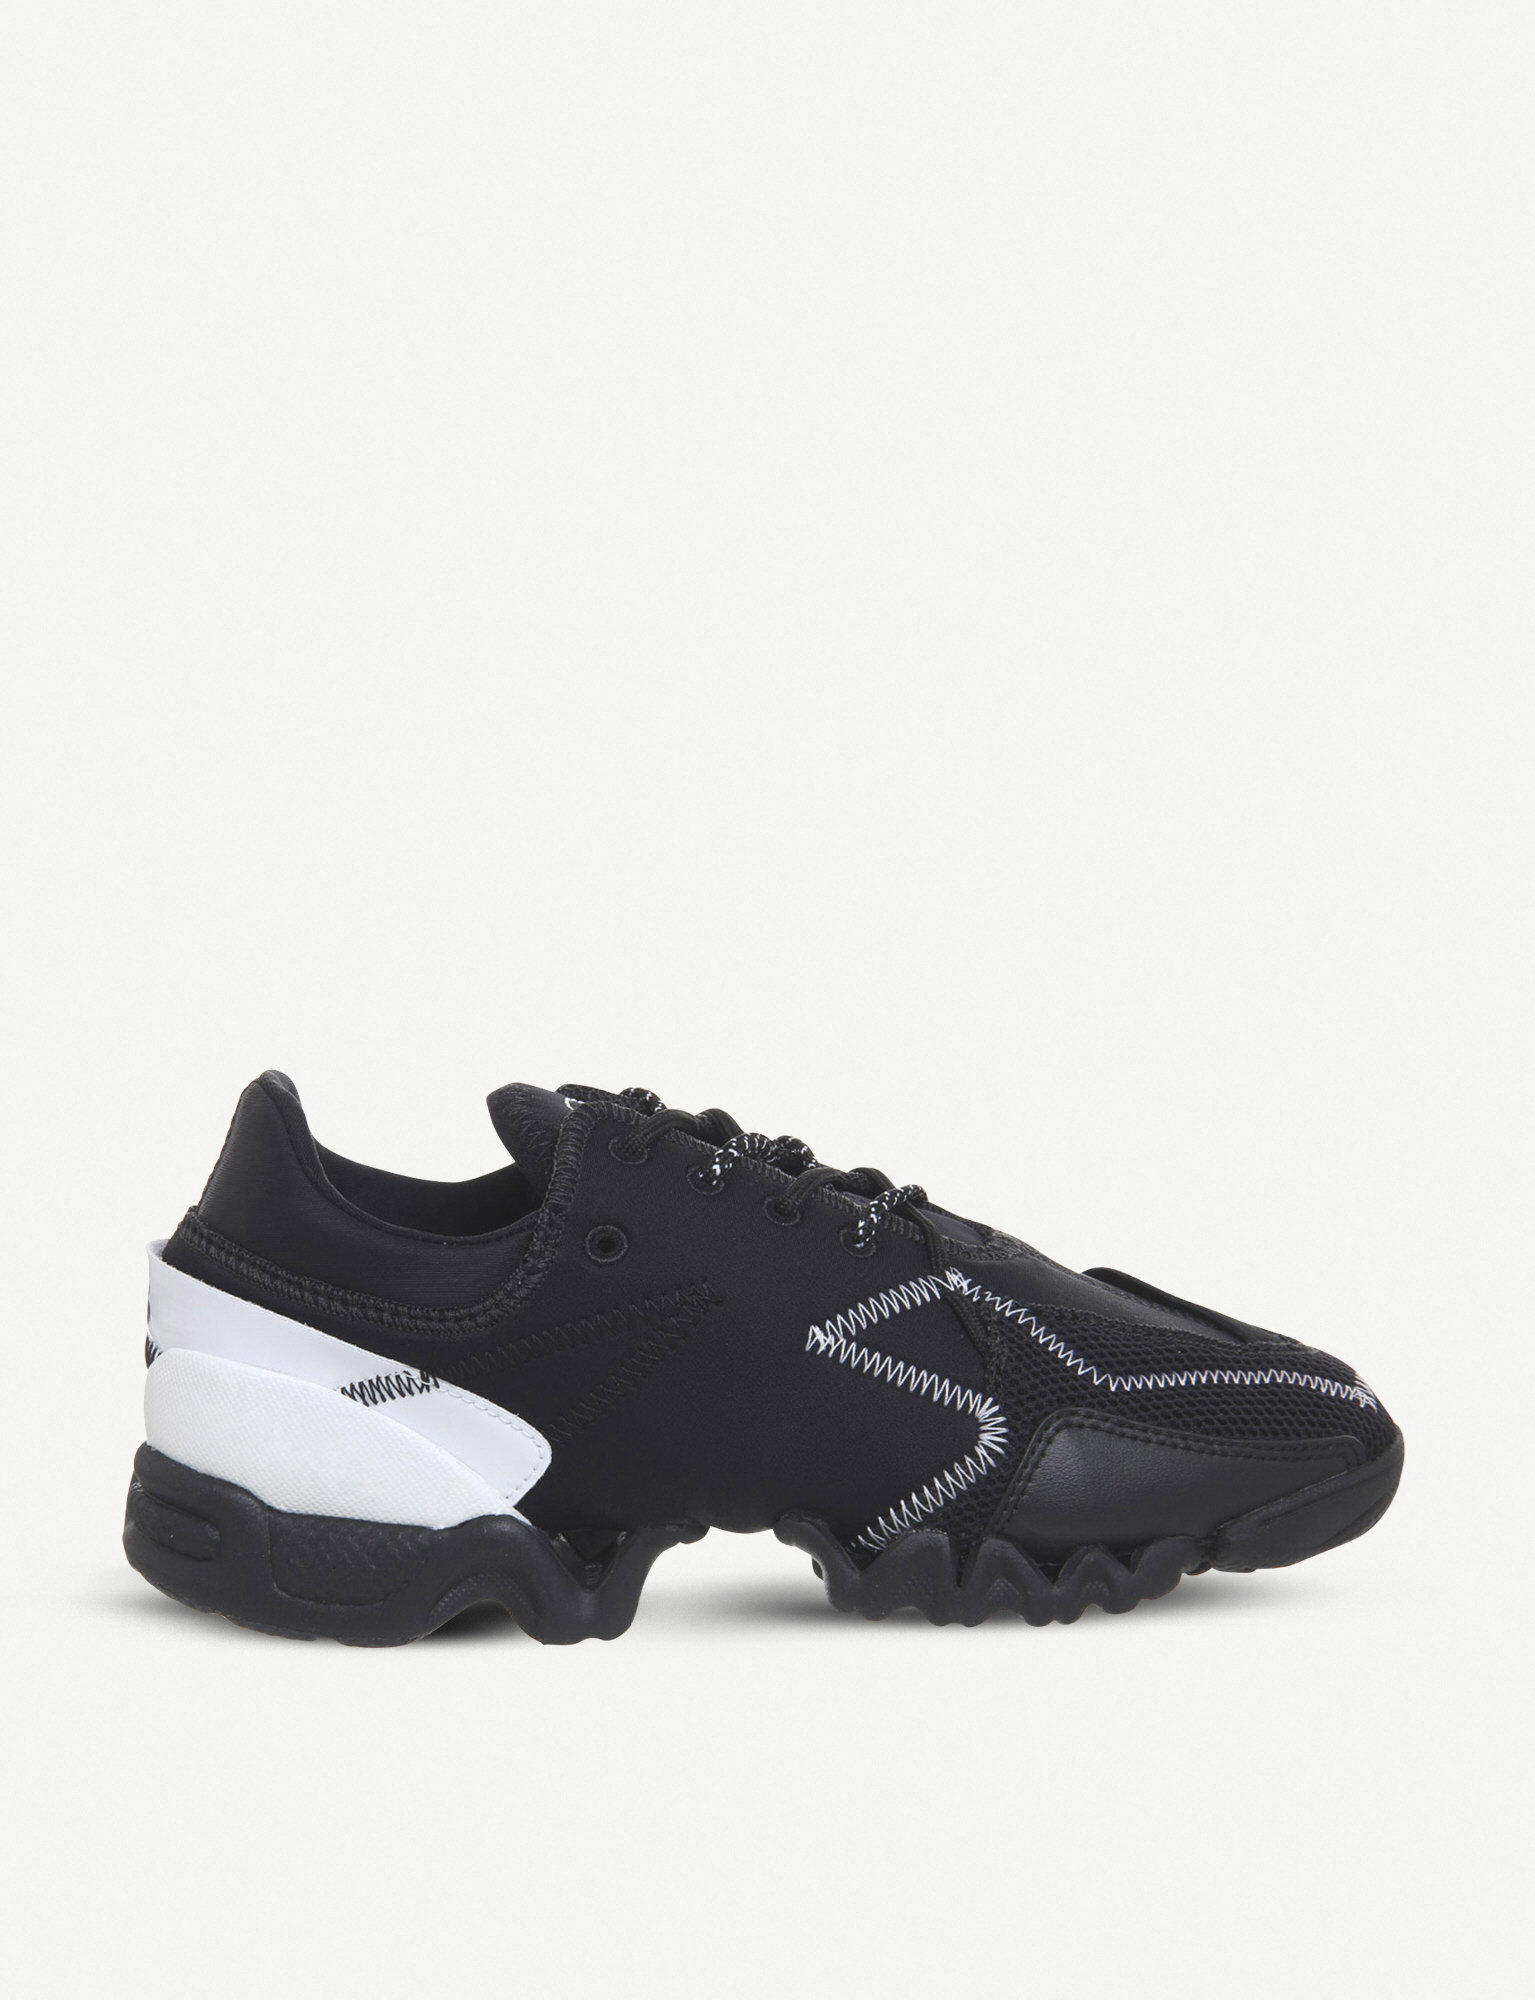 10d35abaf233a ADIDAS Y3 - Ekika leather and neoprene trainers